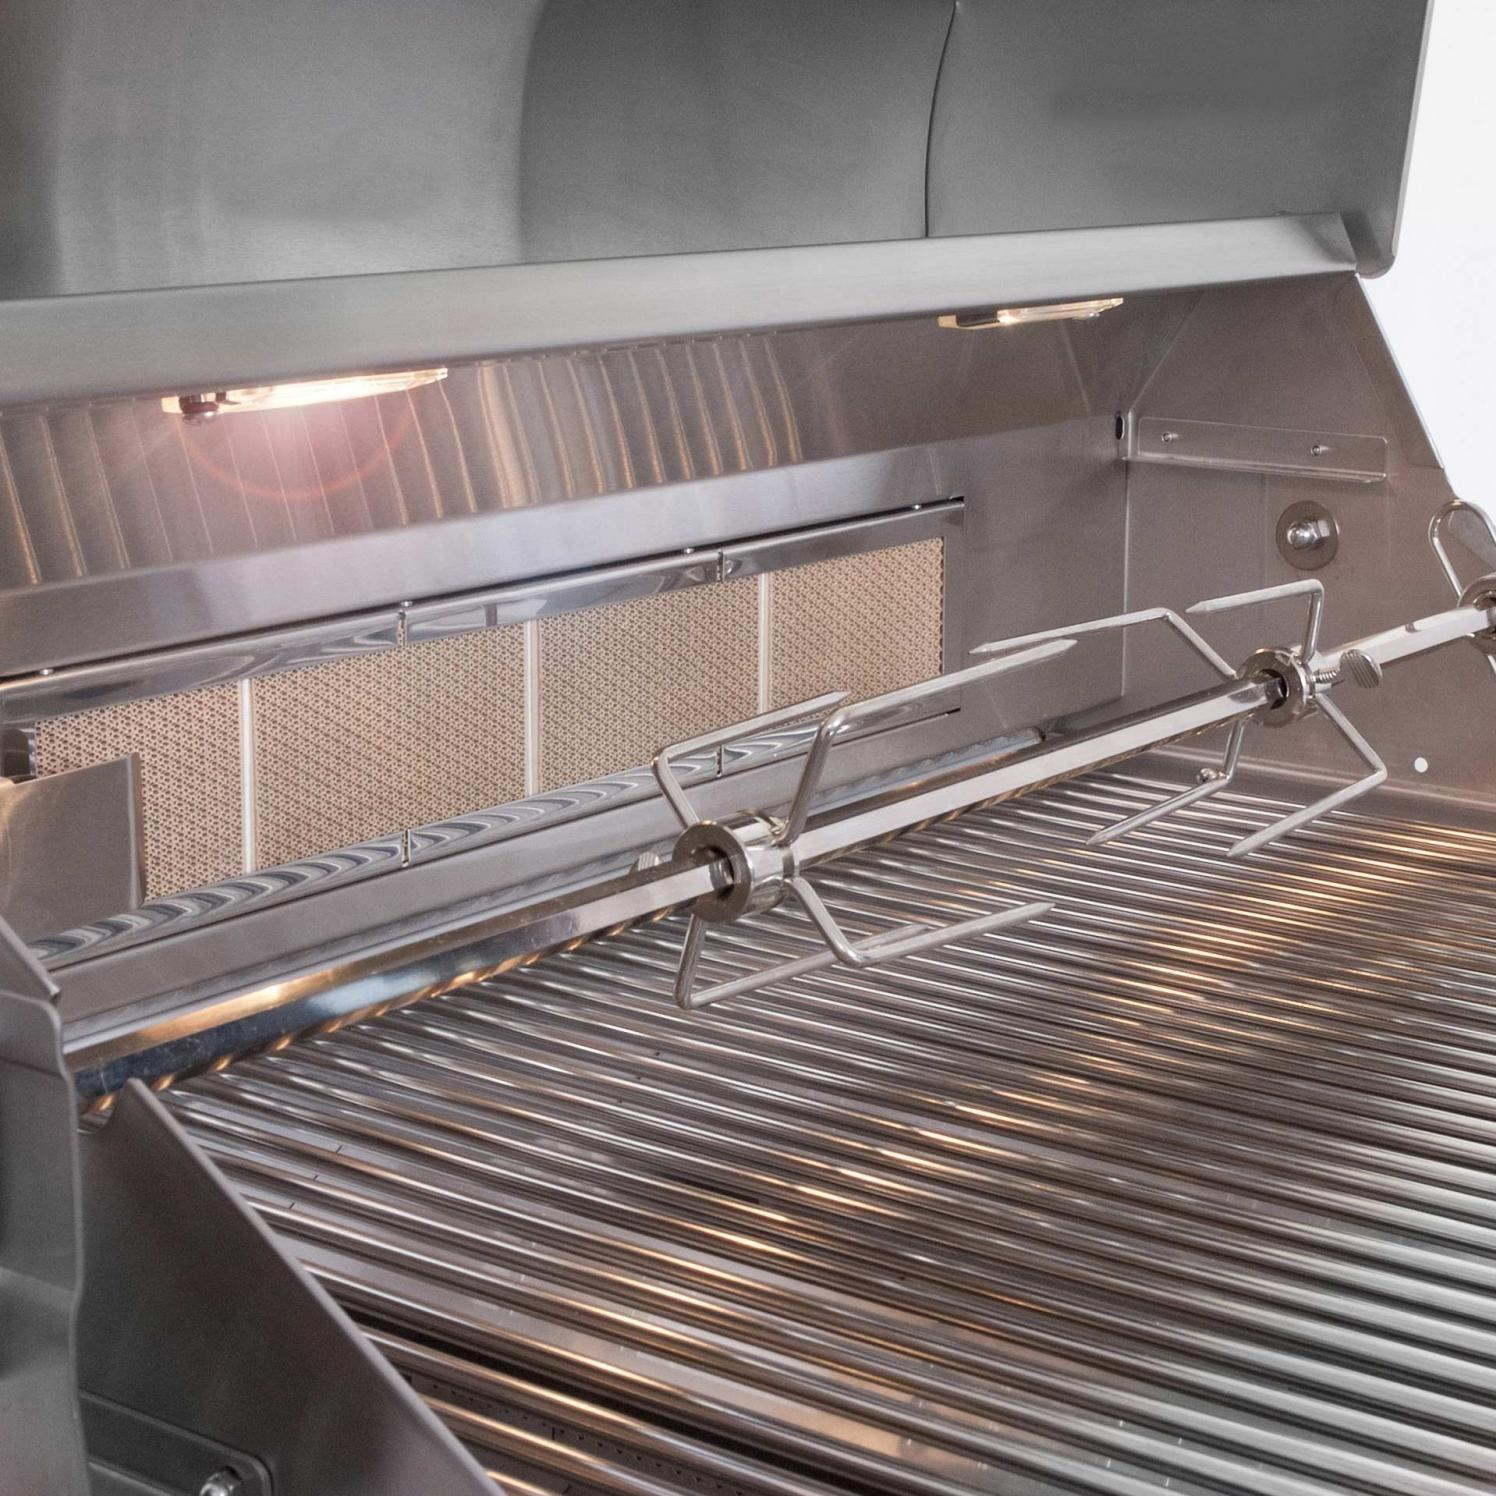 Lion 32 Inch Gas Grill L75000 Stainless Steel